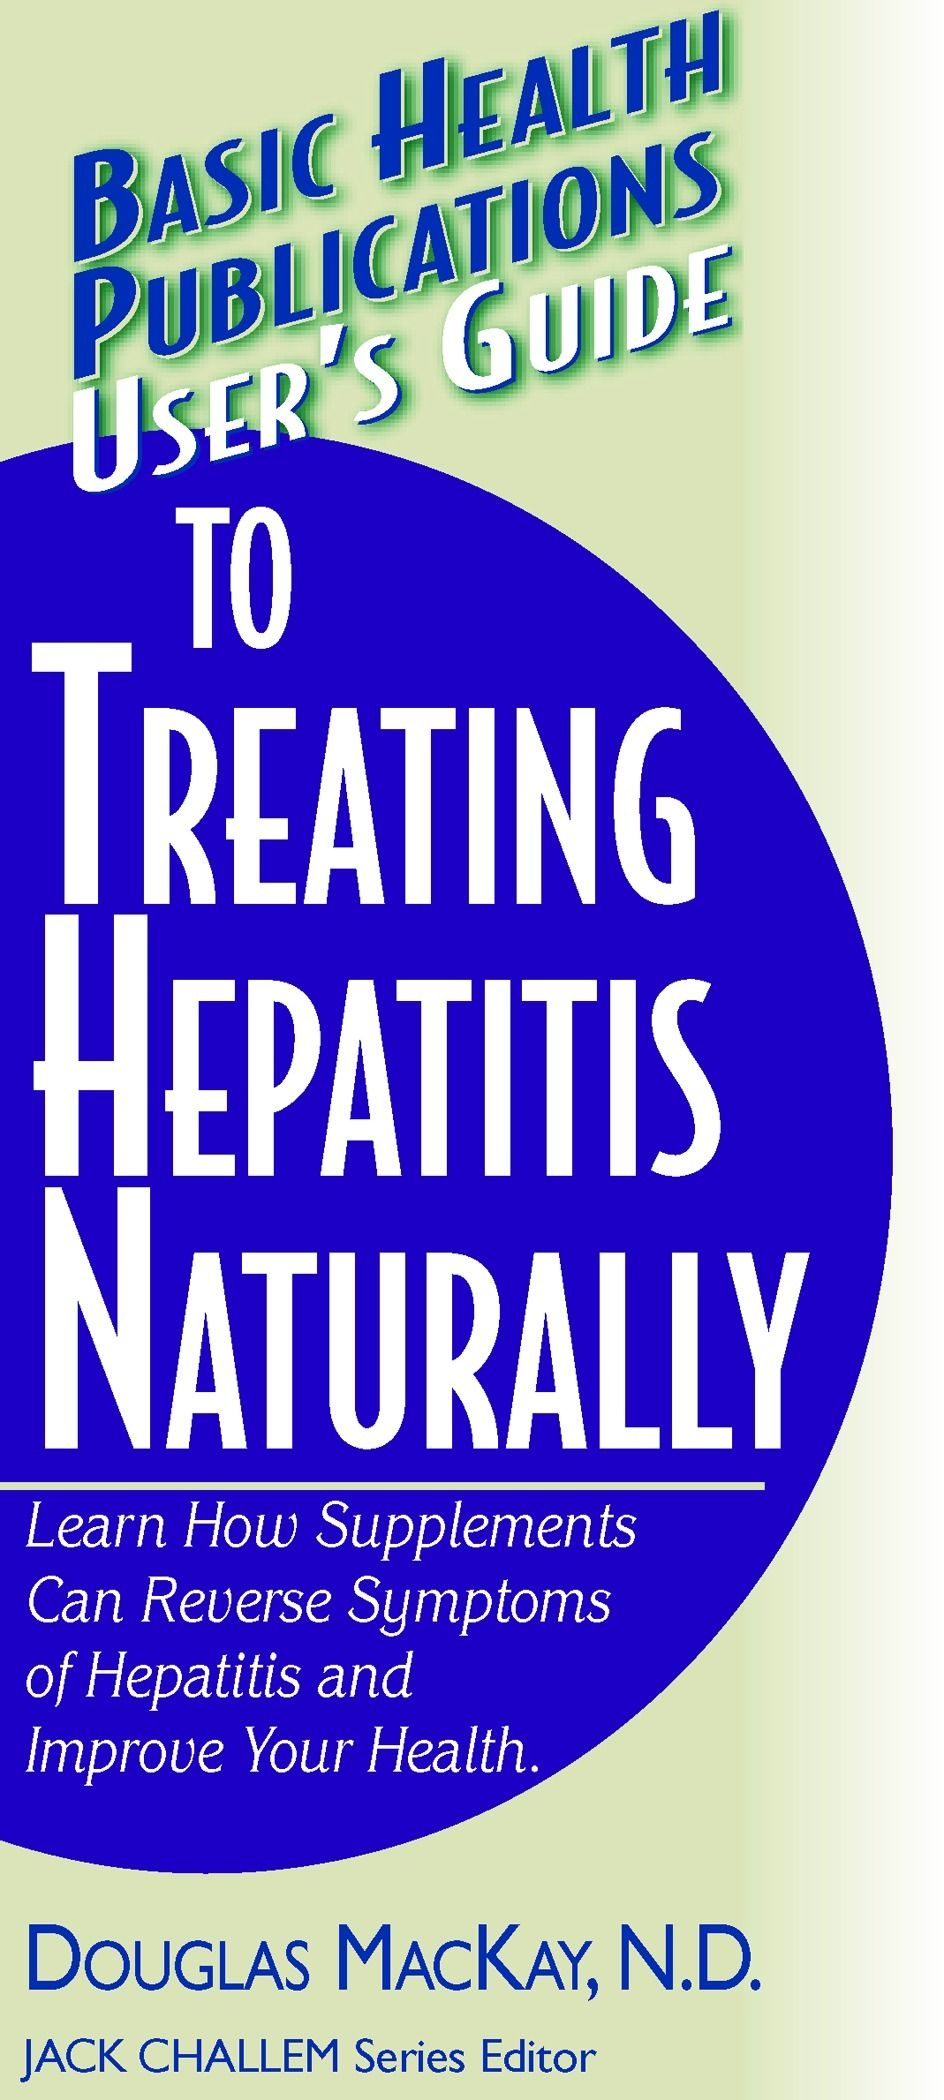 User's Guide to Treating Hepatitis Naturally (Basic Health Publications User's Guide)